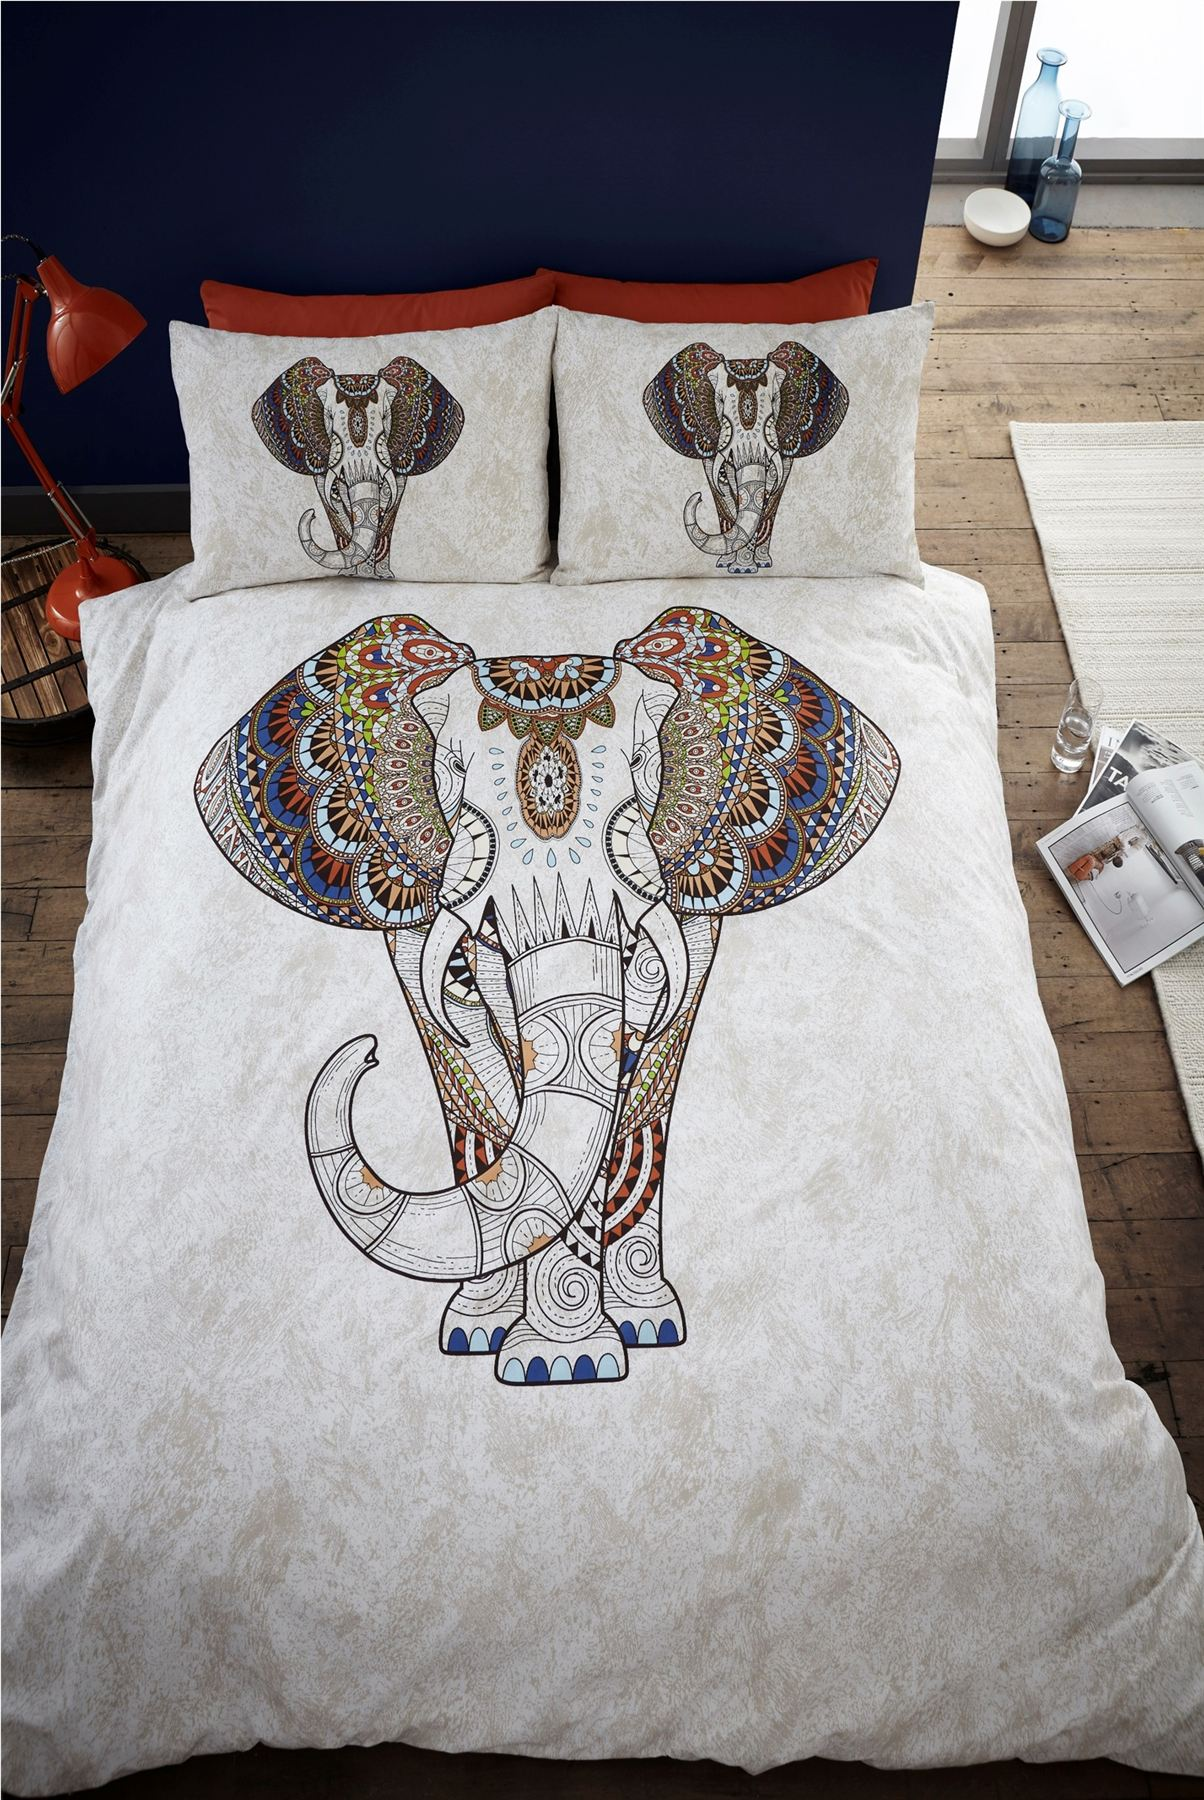 indian style elephant quilt duvet cover pillowcase bedding bed sets 4 sizes ebay. Black Bedroom Furniture Sets. Home Design Ideas